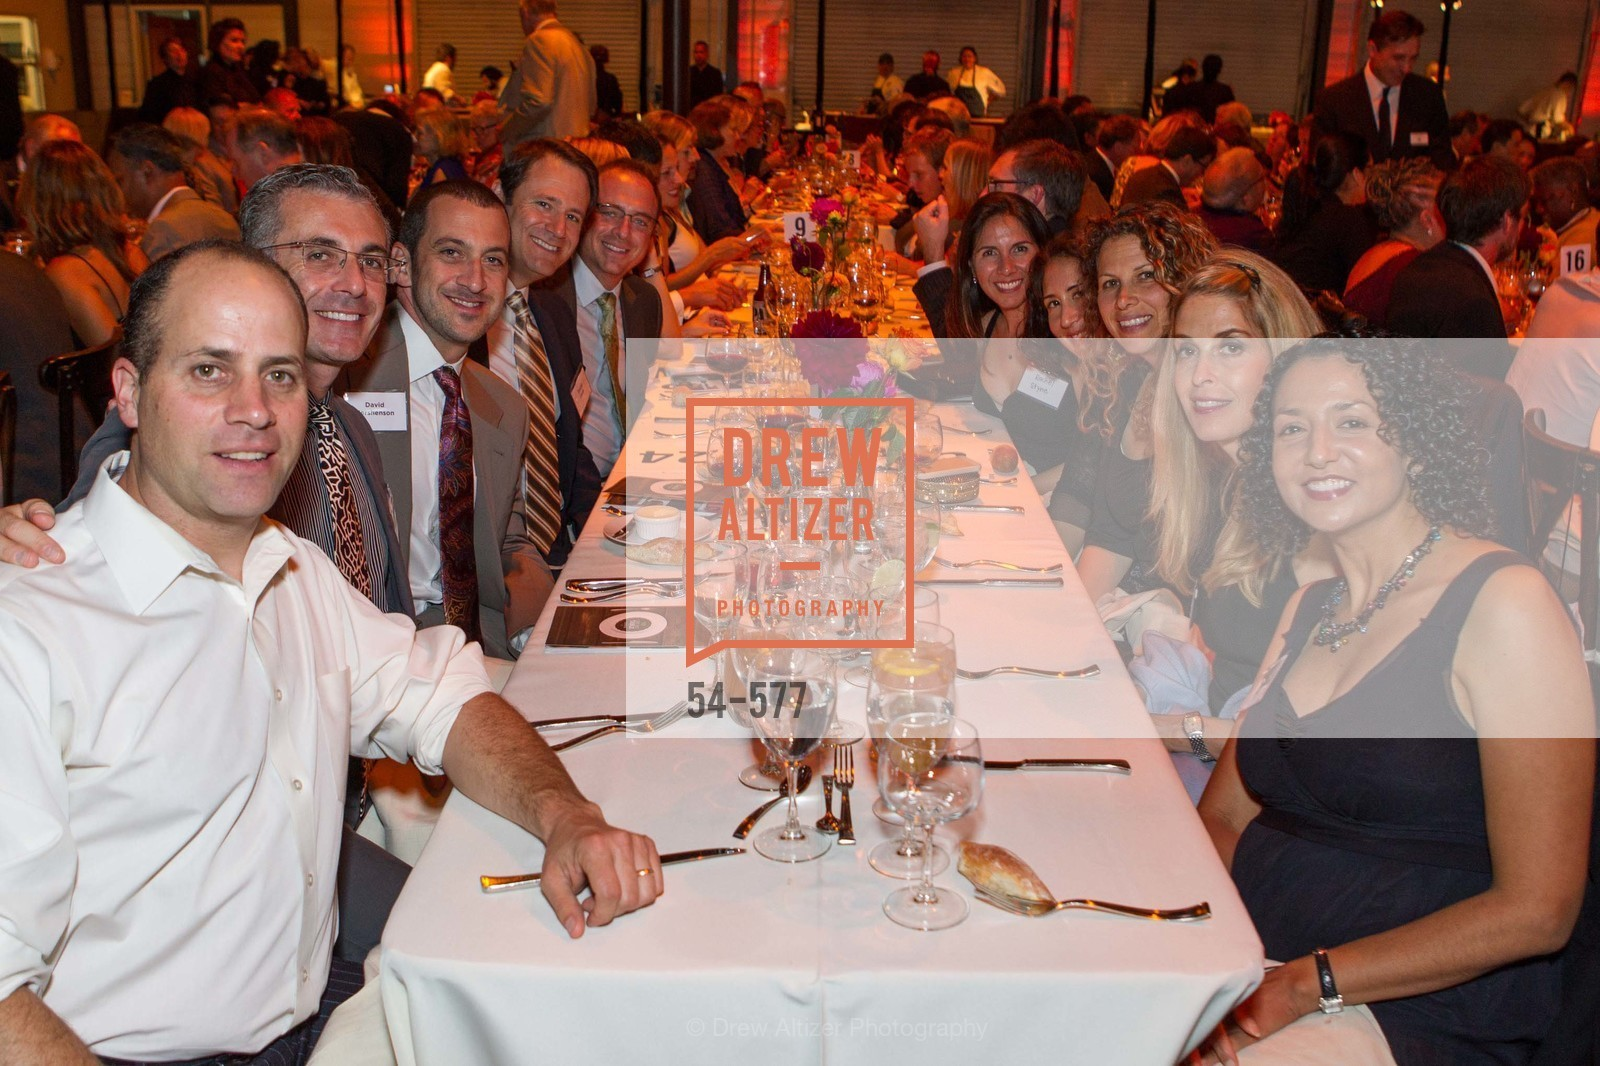 David Hershenson, David Leeb, Michael Edelstein, Rachel Styne, Mary Scott, Charlene Schachter, Toni Salan, SF-MARIN FOOD BANK One Big Table Gala, US, September 27th, 2014,Drew Altizer, Drew Altizer Photography, full-service event agency, private events, San Francisco photographer, photographer California